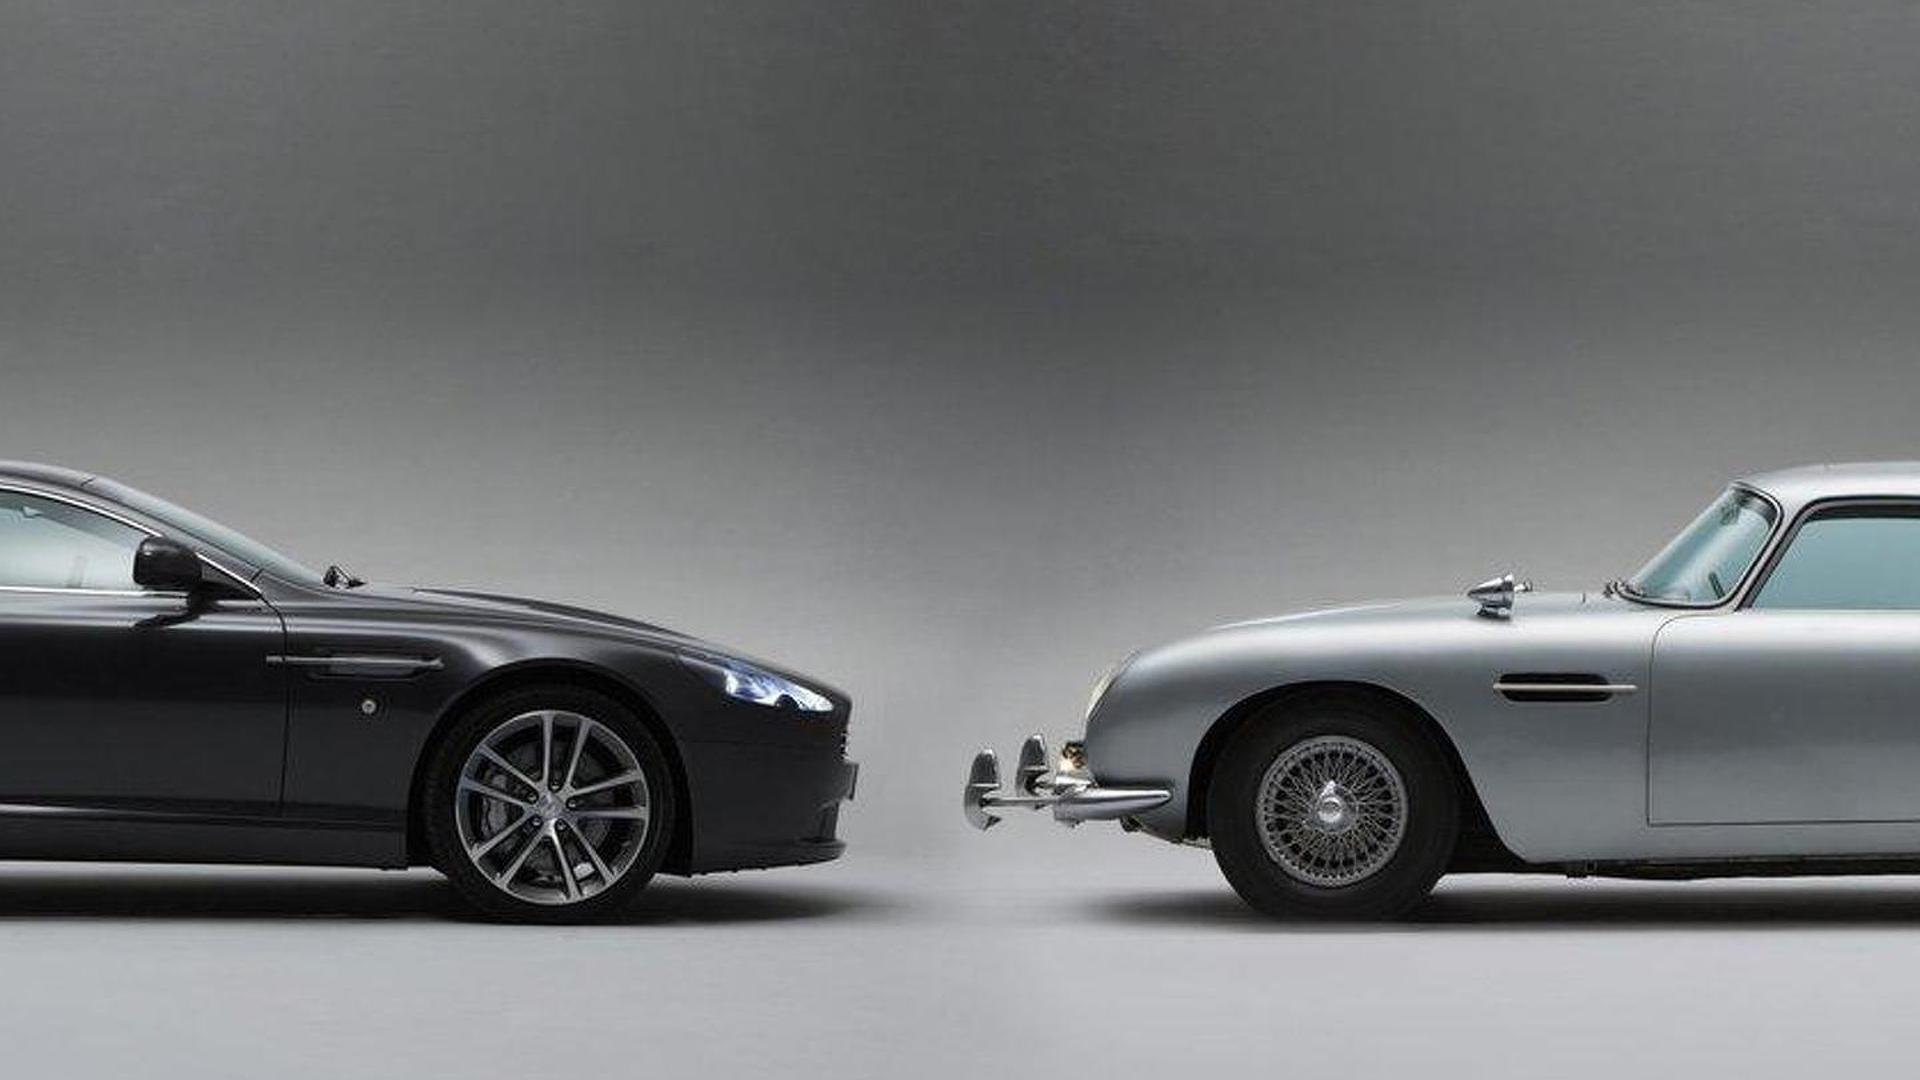 Aston Martin Db5 From Goldfinger Sells For 4 6m Videos